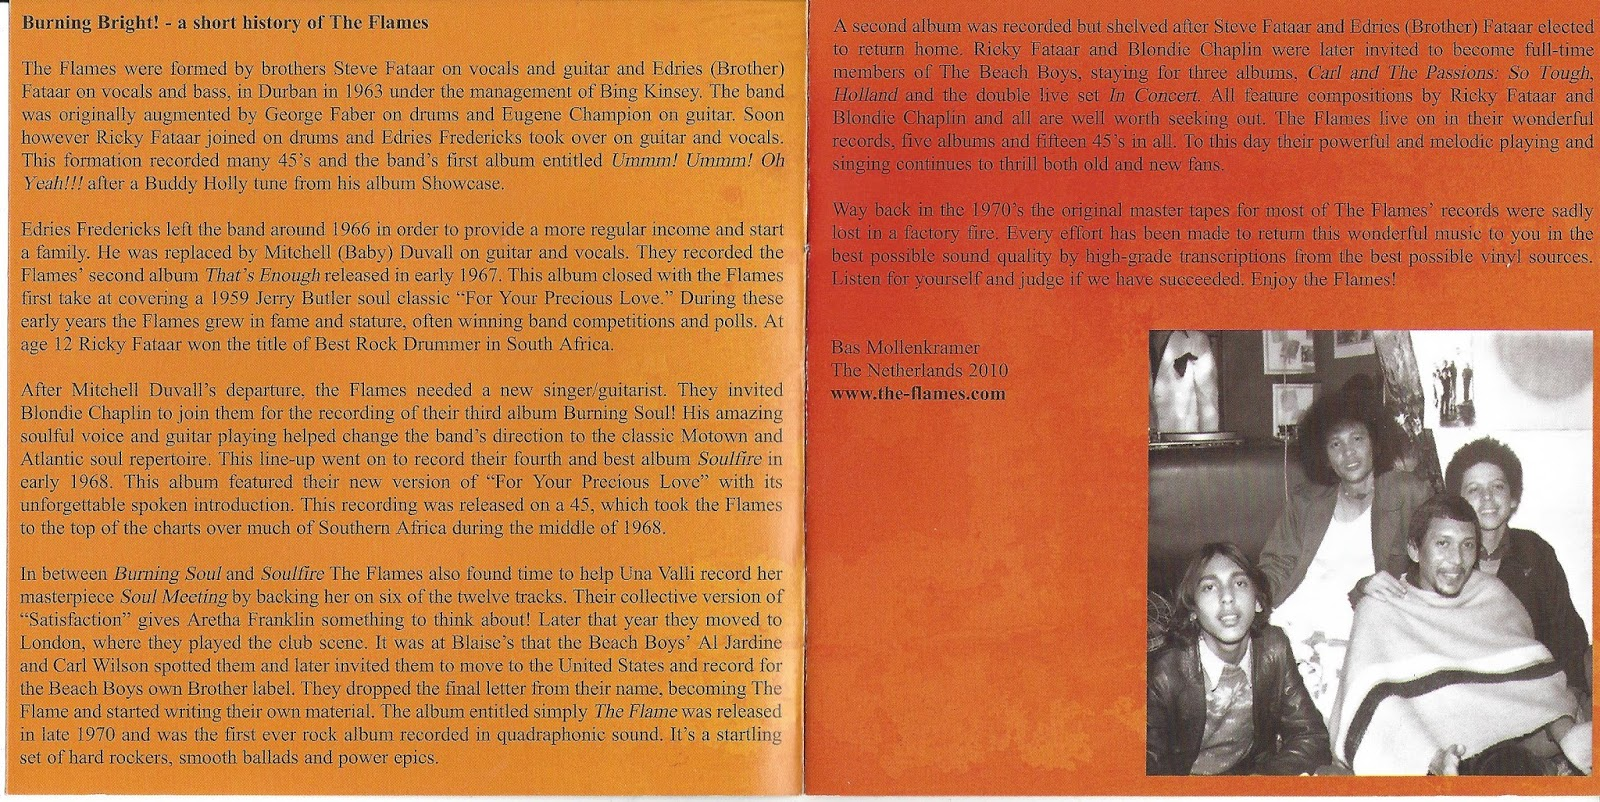 Orange pop records s profile hear the world s sounds - These Two Albums Are Before The Flame And The Sound Is More In A Pop Soul Direction If You Hear The Albums Of The Flames From The Middle Of The